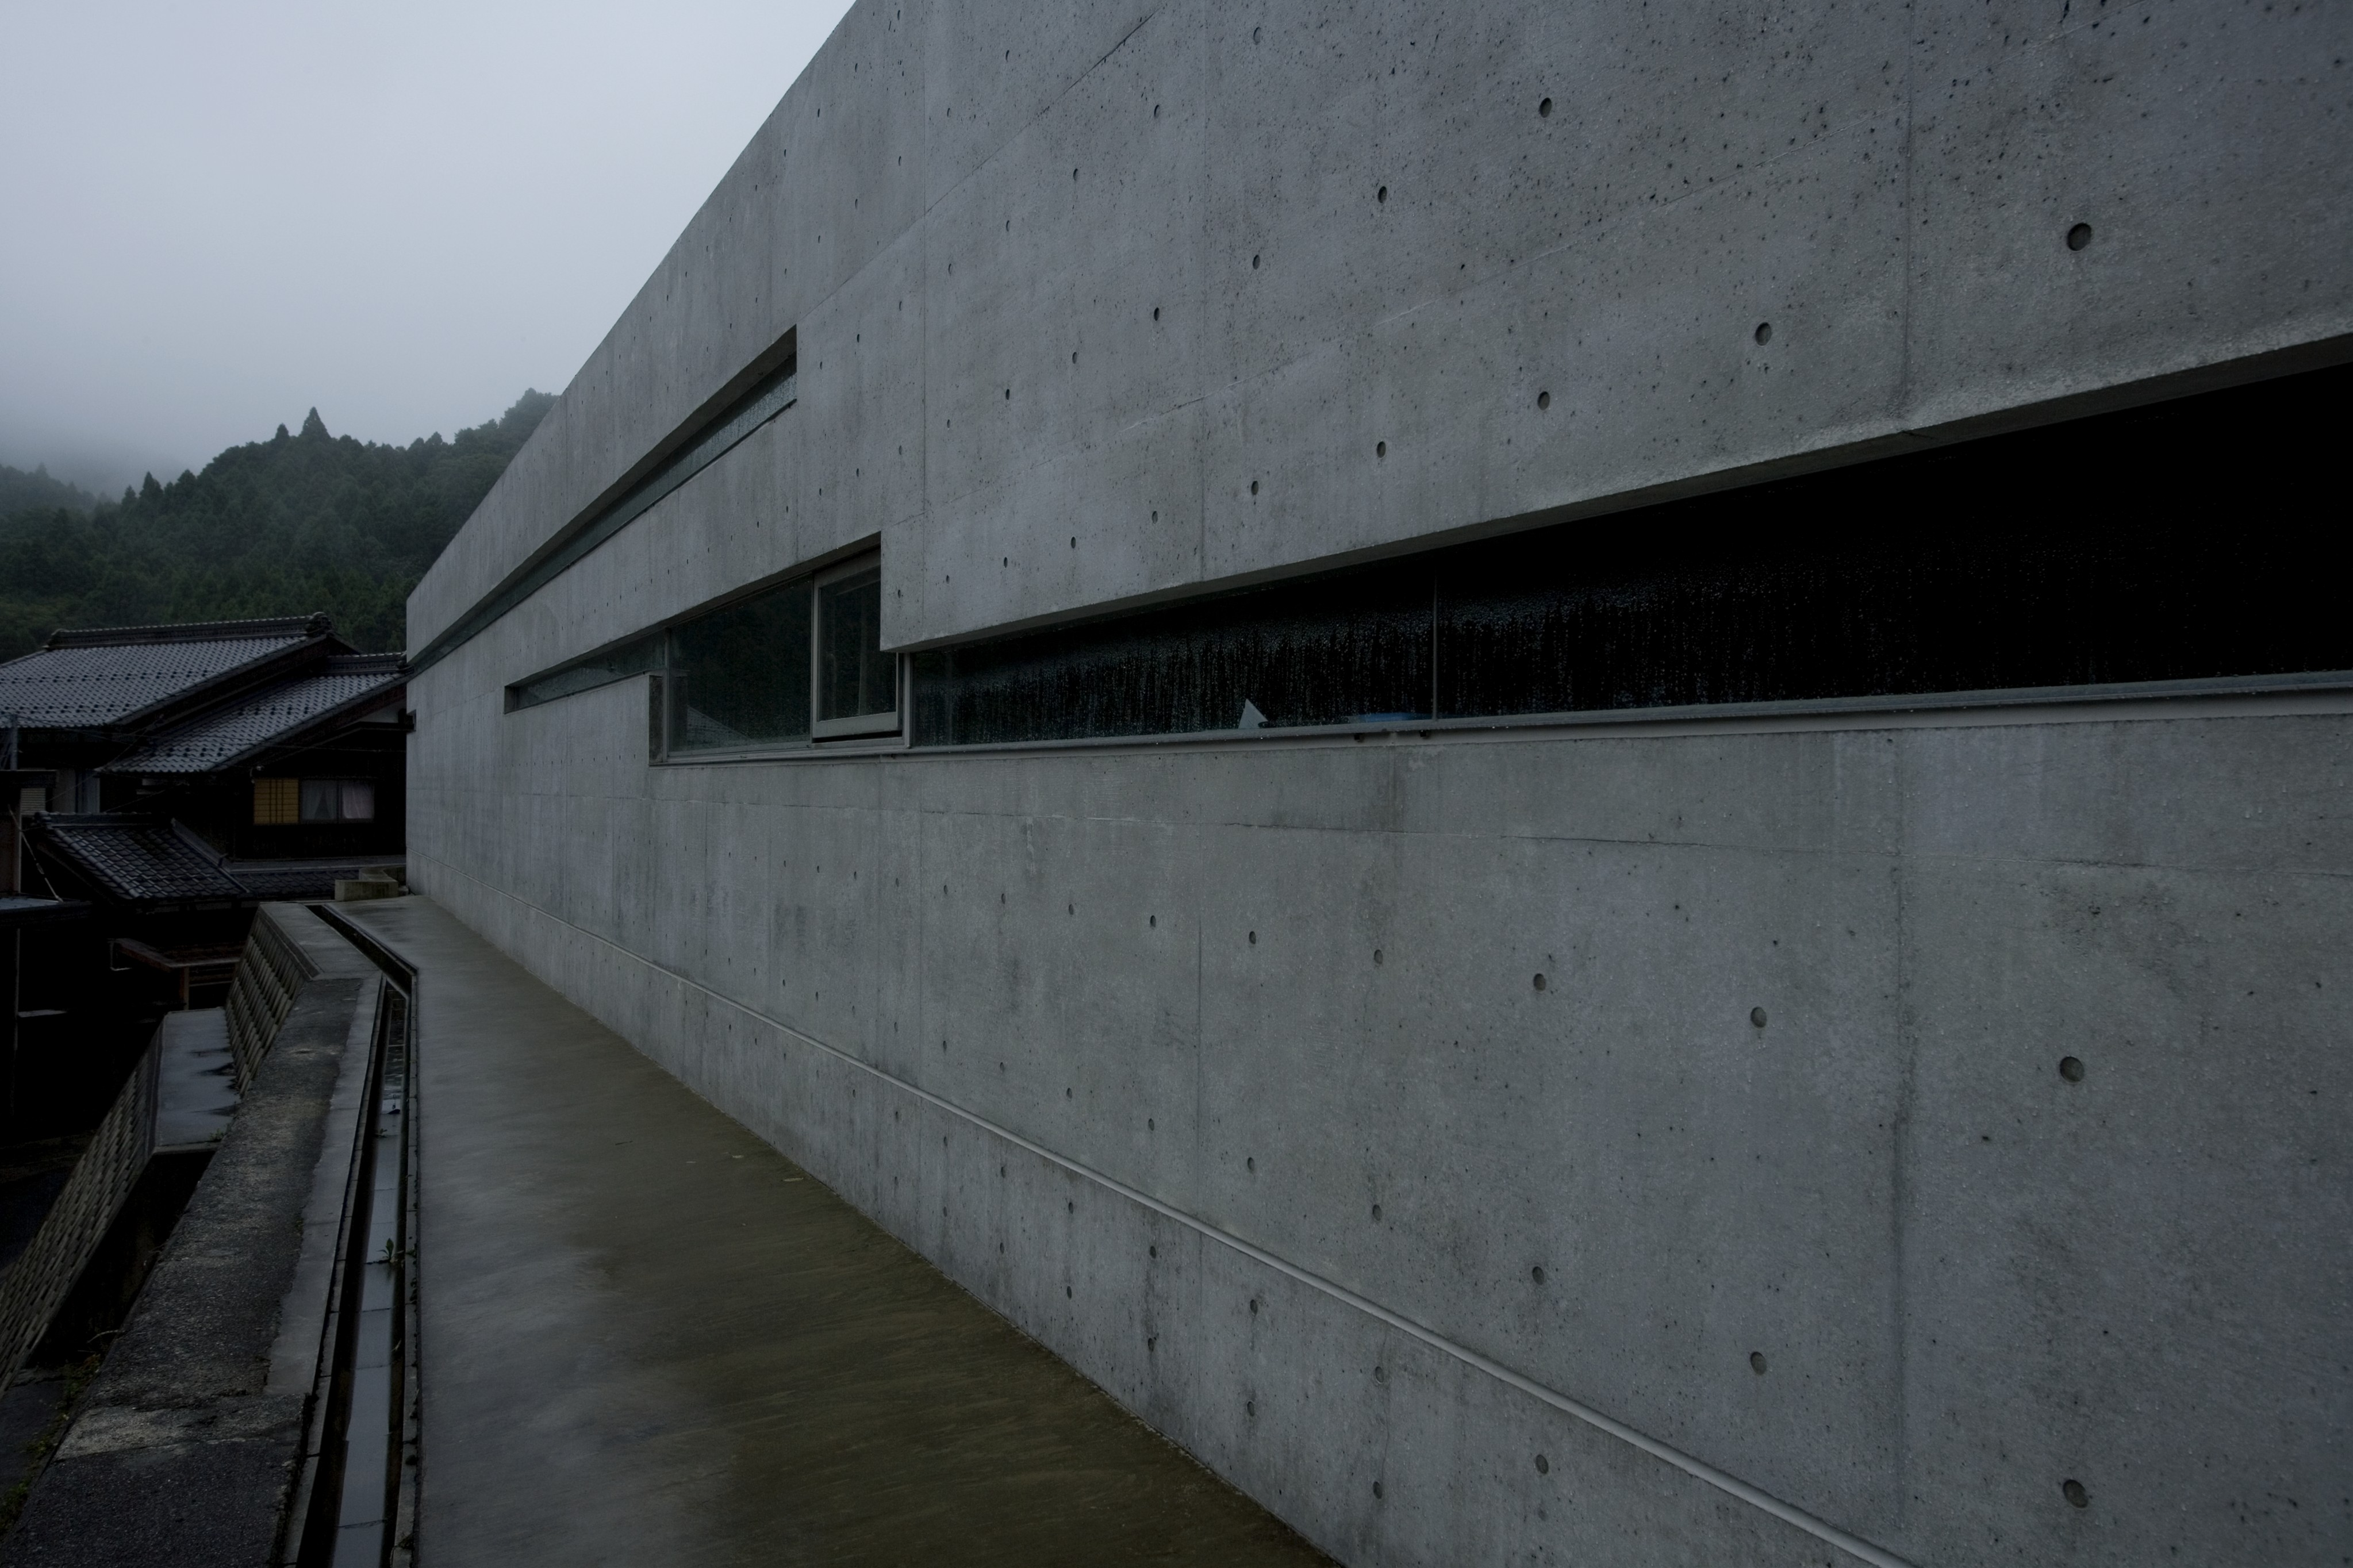 From above the retaining wall, we see the concrete facade and slit windows heavily obscured. The uniform expanse of grey hides the warm natural tones within.